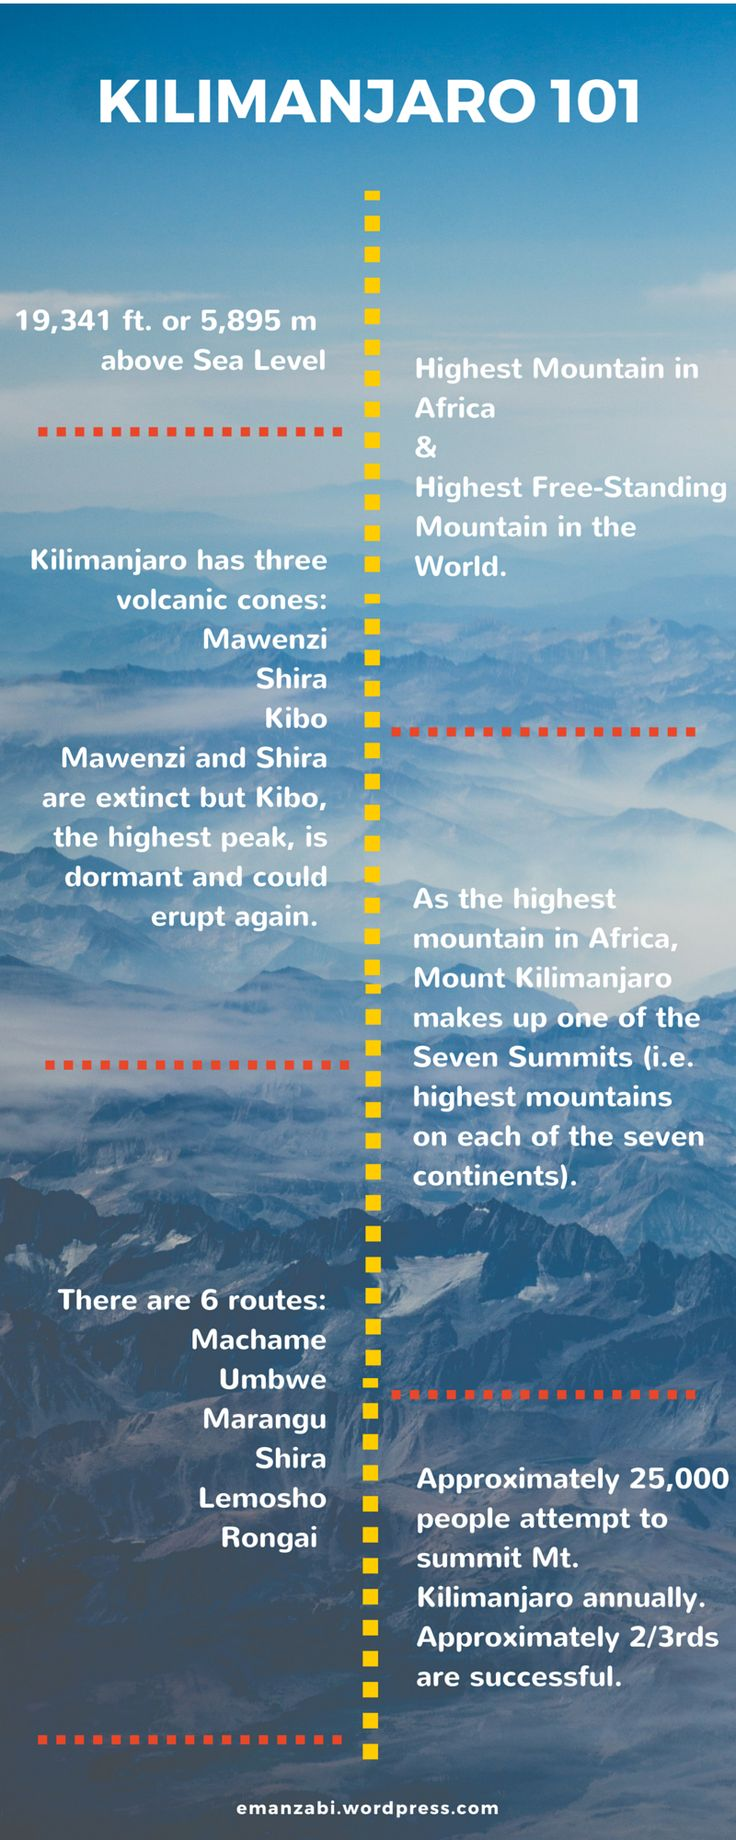 Kilimanjaro 101. How hard is it to climb mount Kilimanjaro? Read more at https://emanzabi.wordpress.com/2016/06/09/kili-series-how-hard-is-to-climb-mt-kilimanjaro/